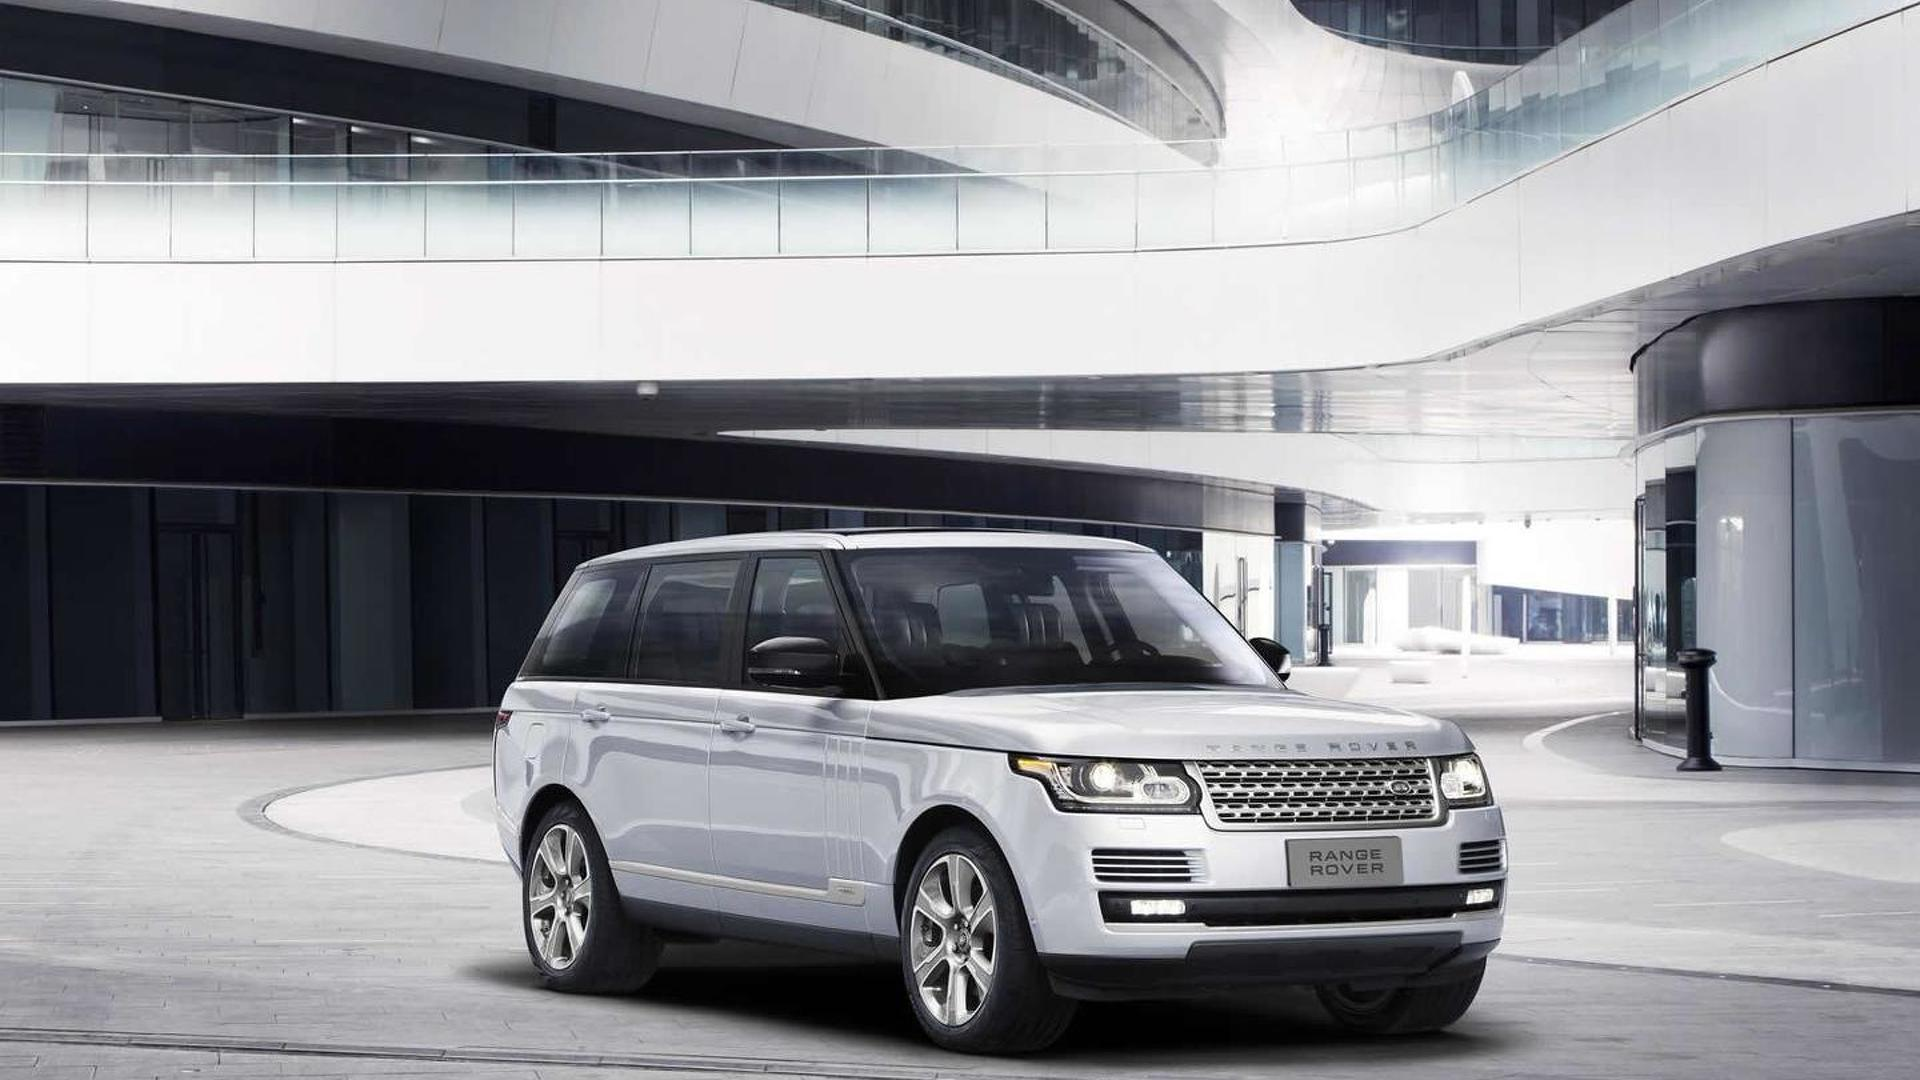 2019 Land Rover Range Rover Hybrid photo - 6